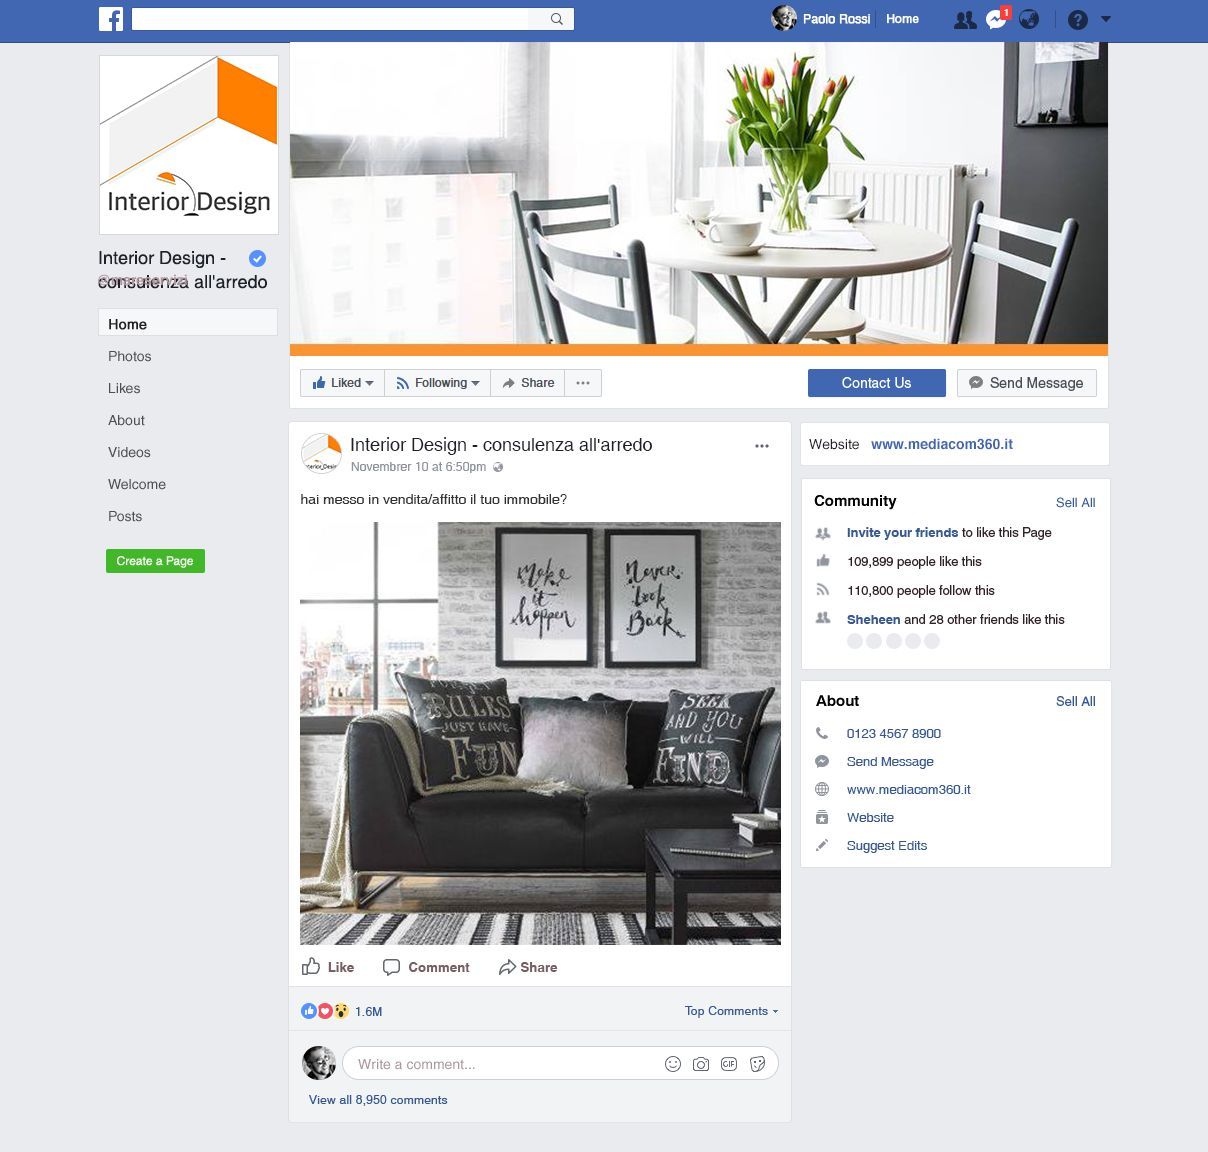 Interior design- facebook -consulenza all'arredo -mediacom360